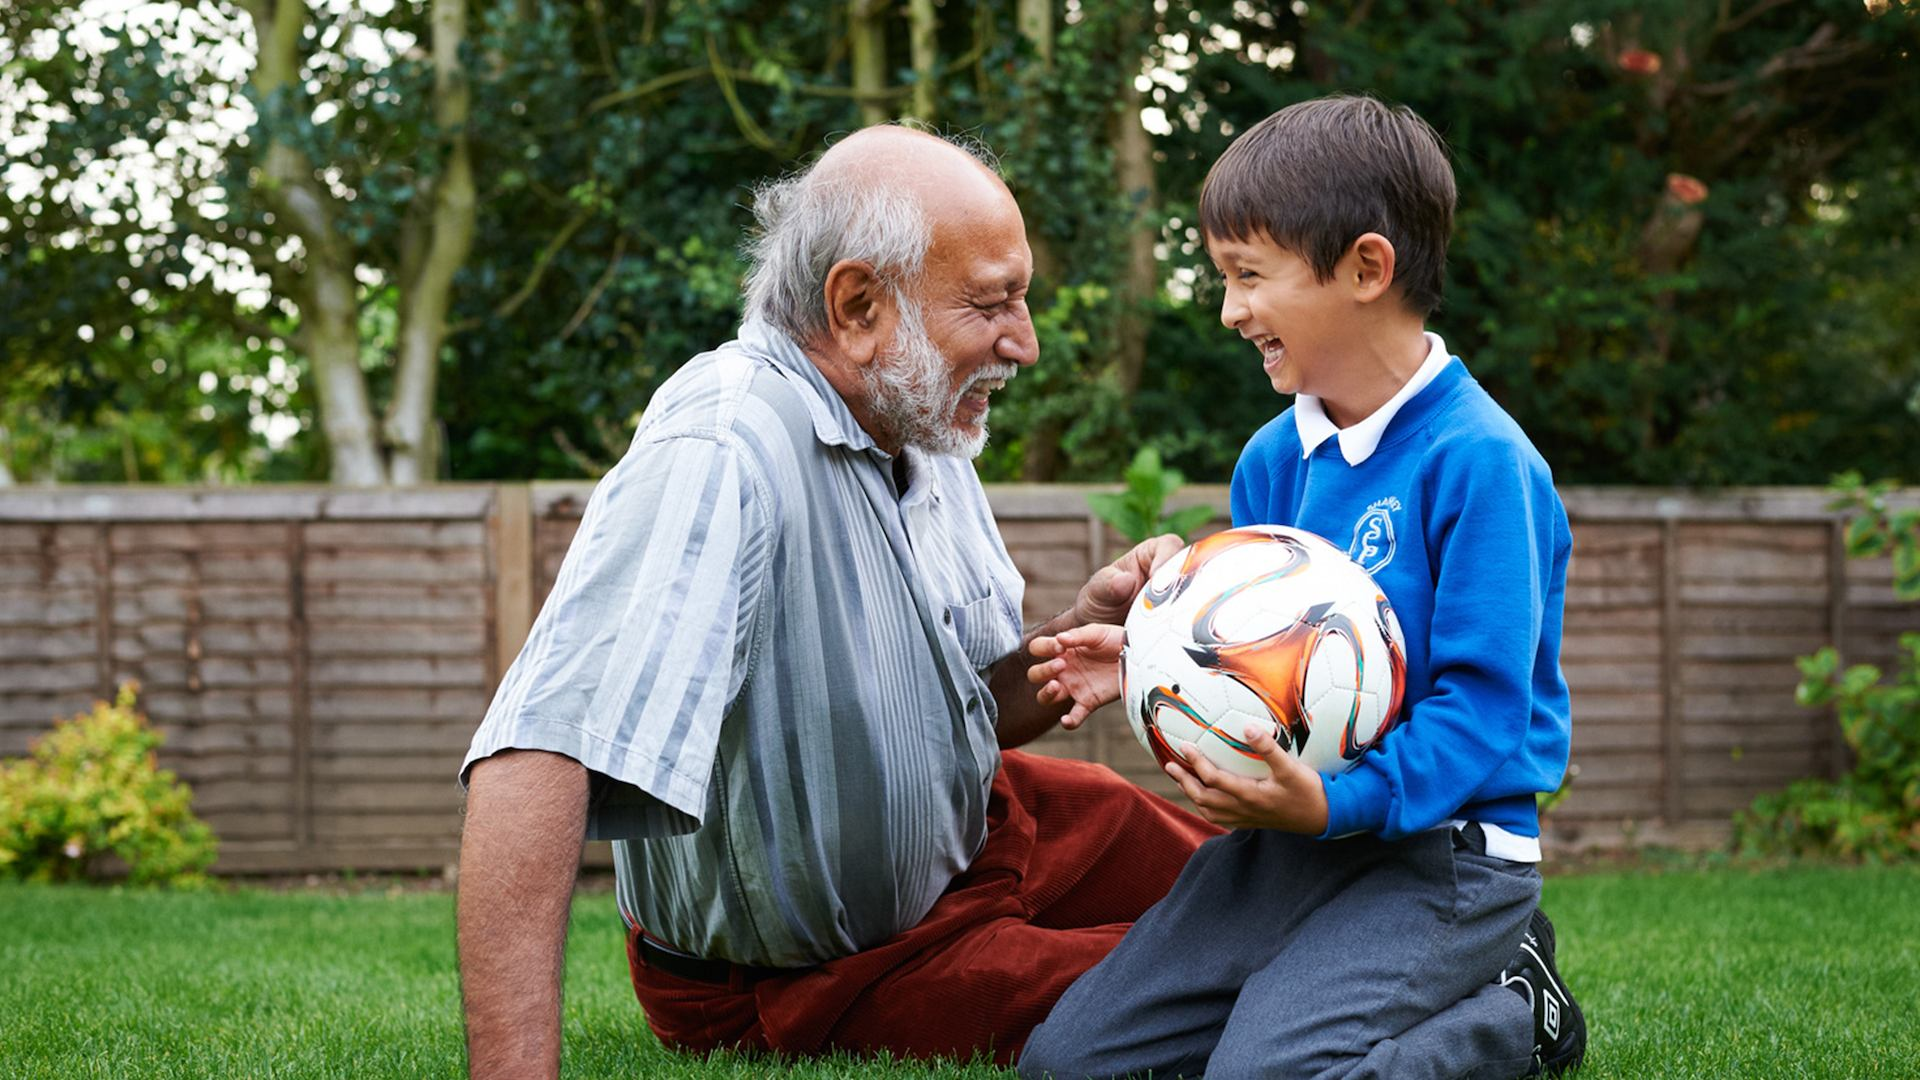 Elderly man and grandson sitting on grass with football.